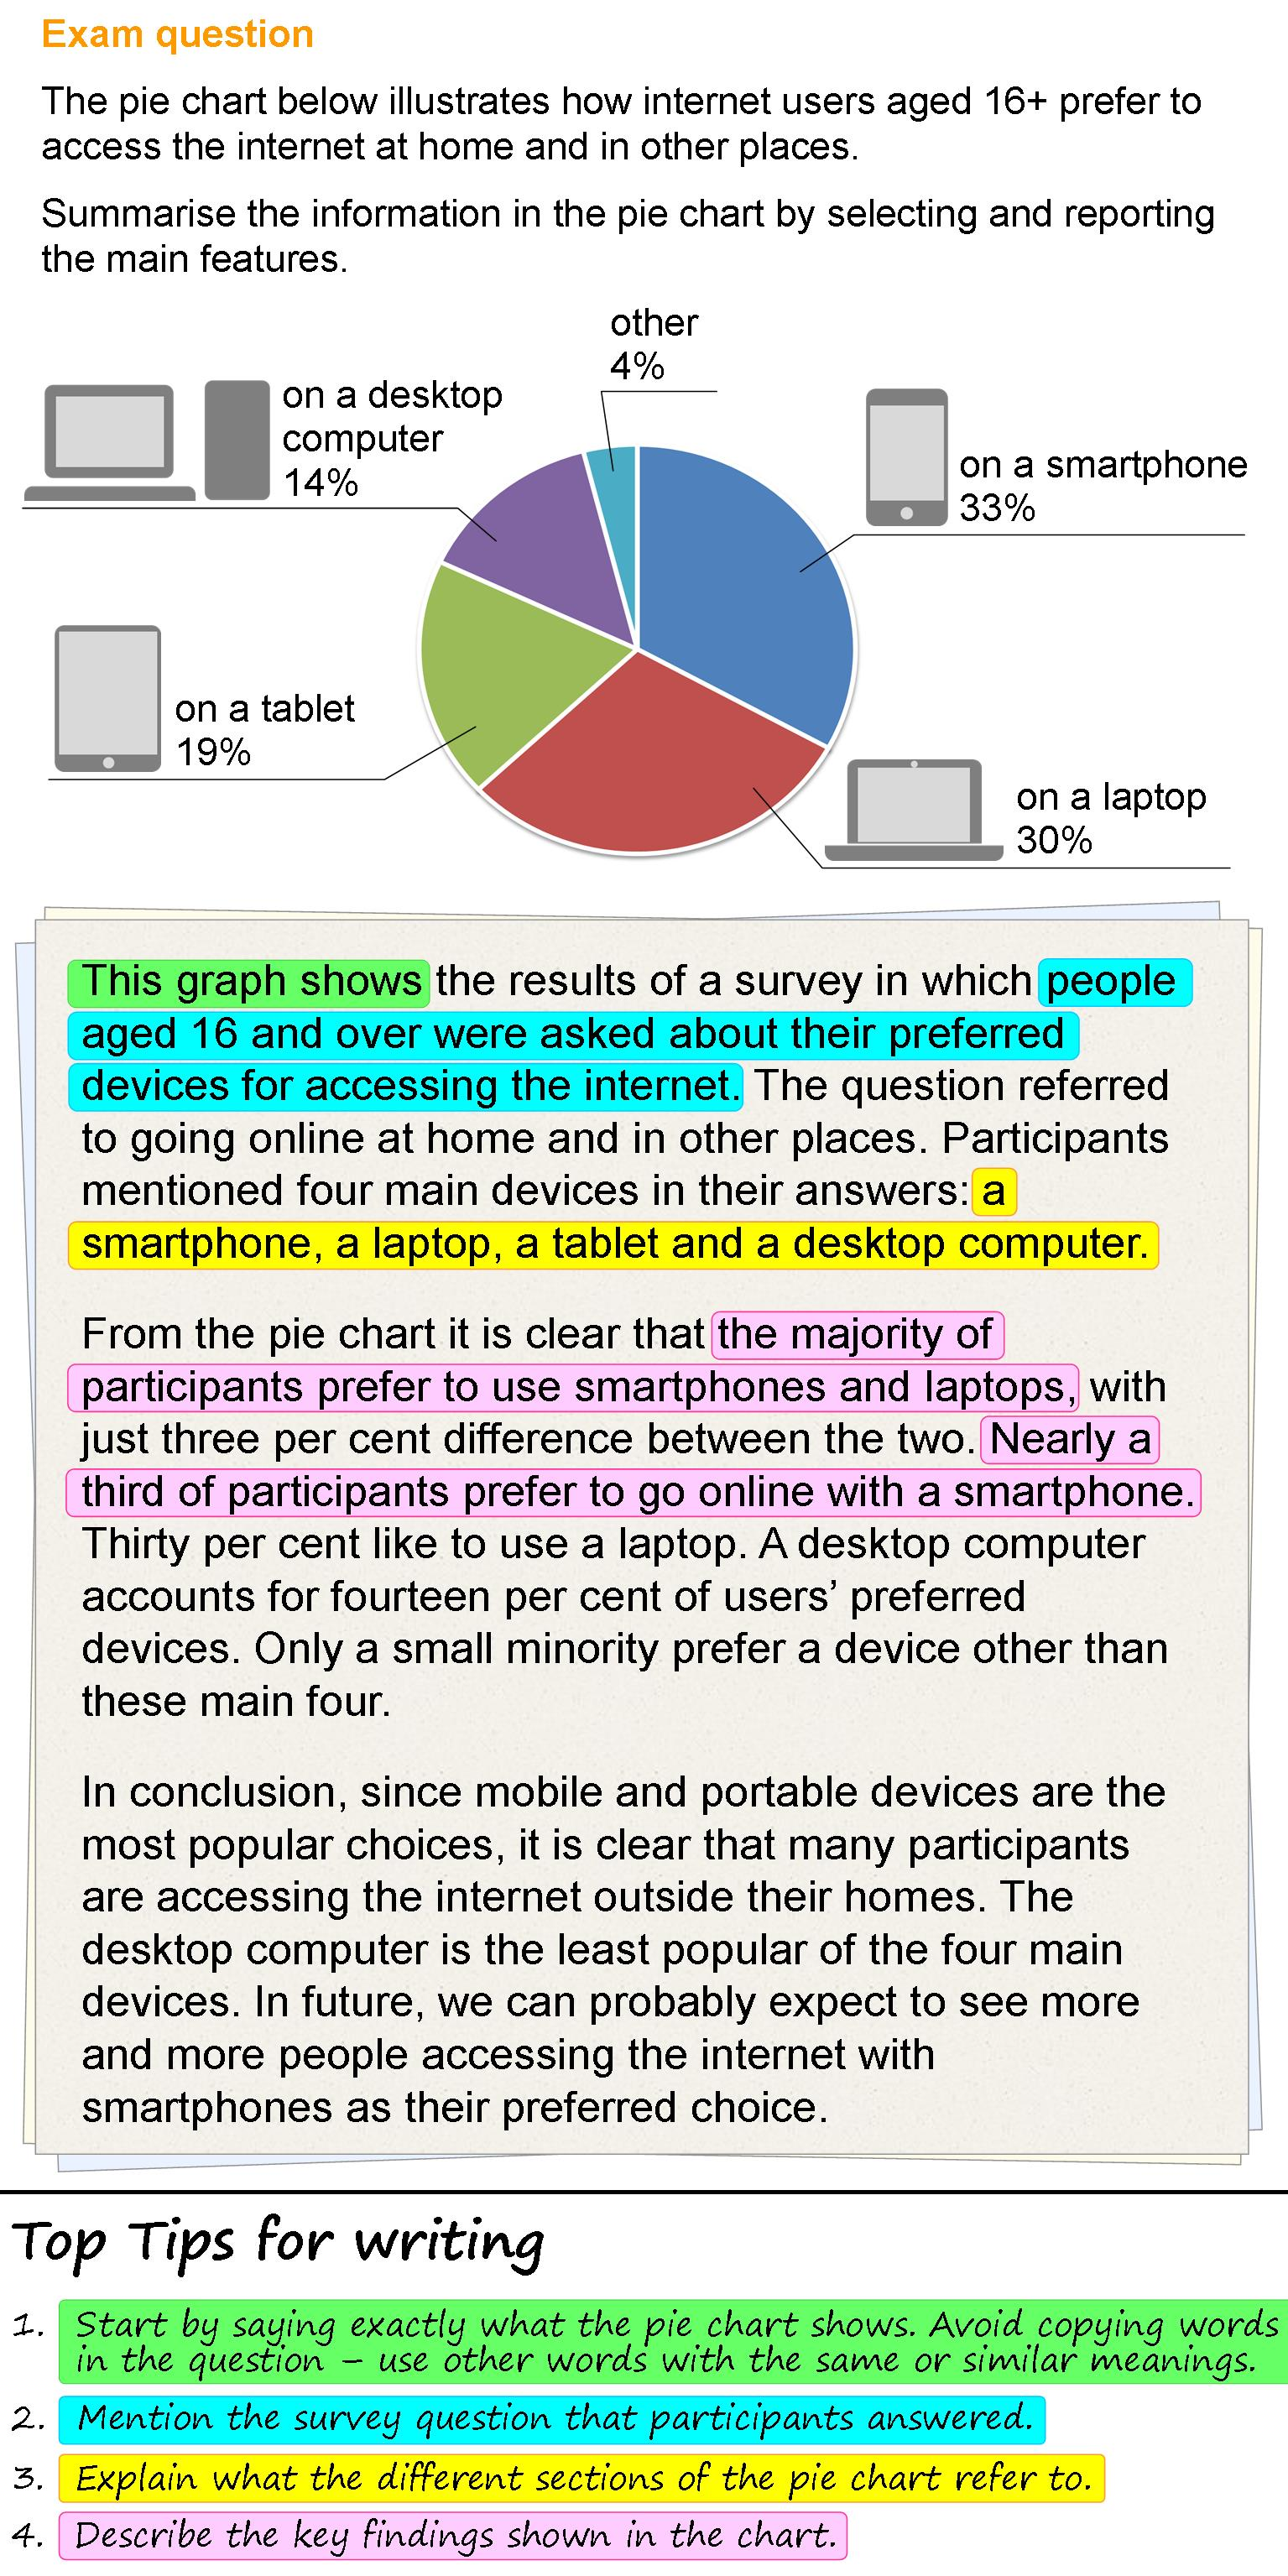 hight resolution of Writing about a pie chart   LearnEnglish Teens - British Council